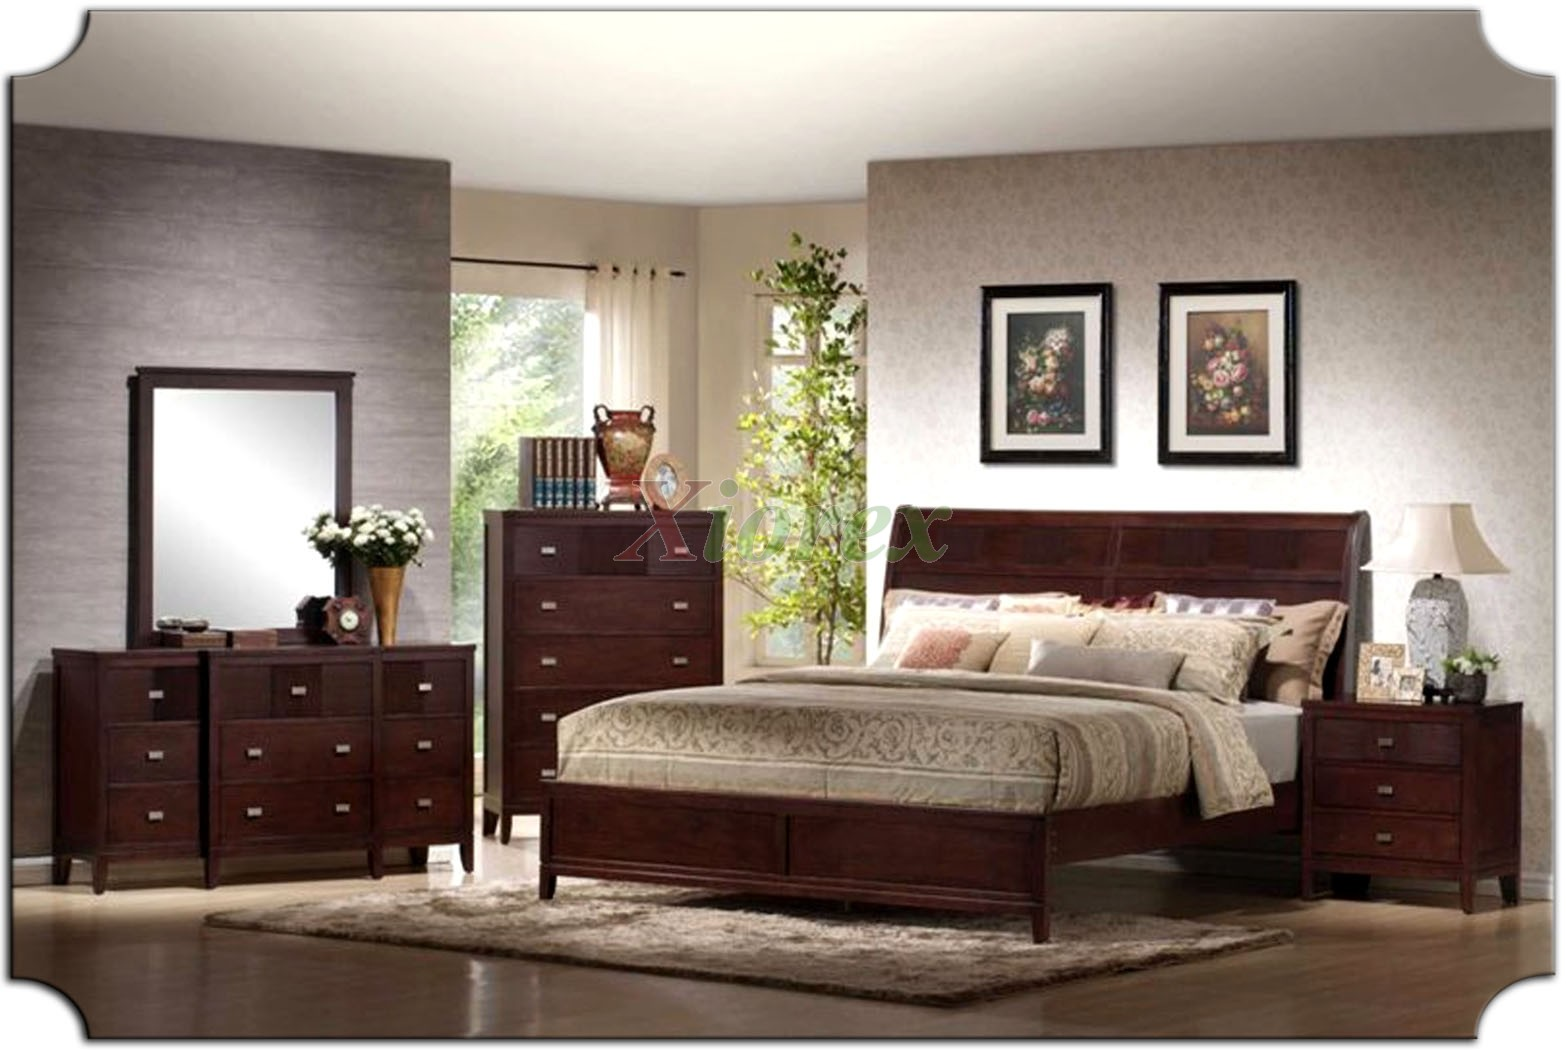 Bedroom sets online shopping india